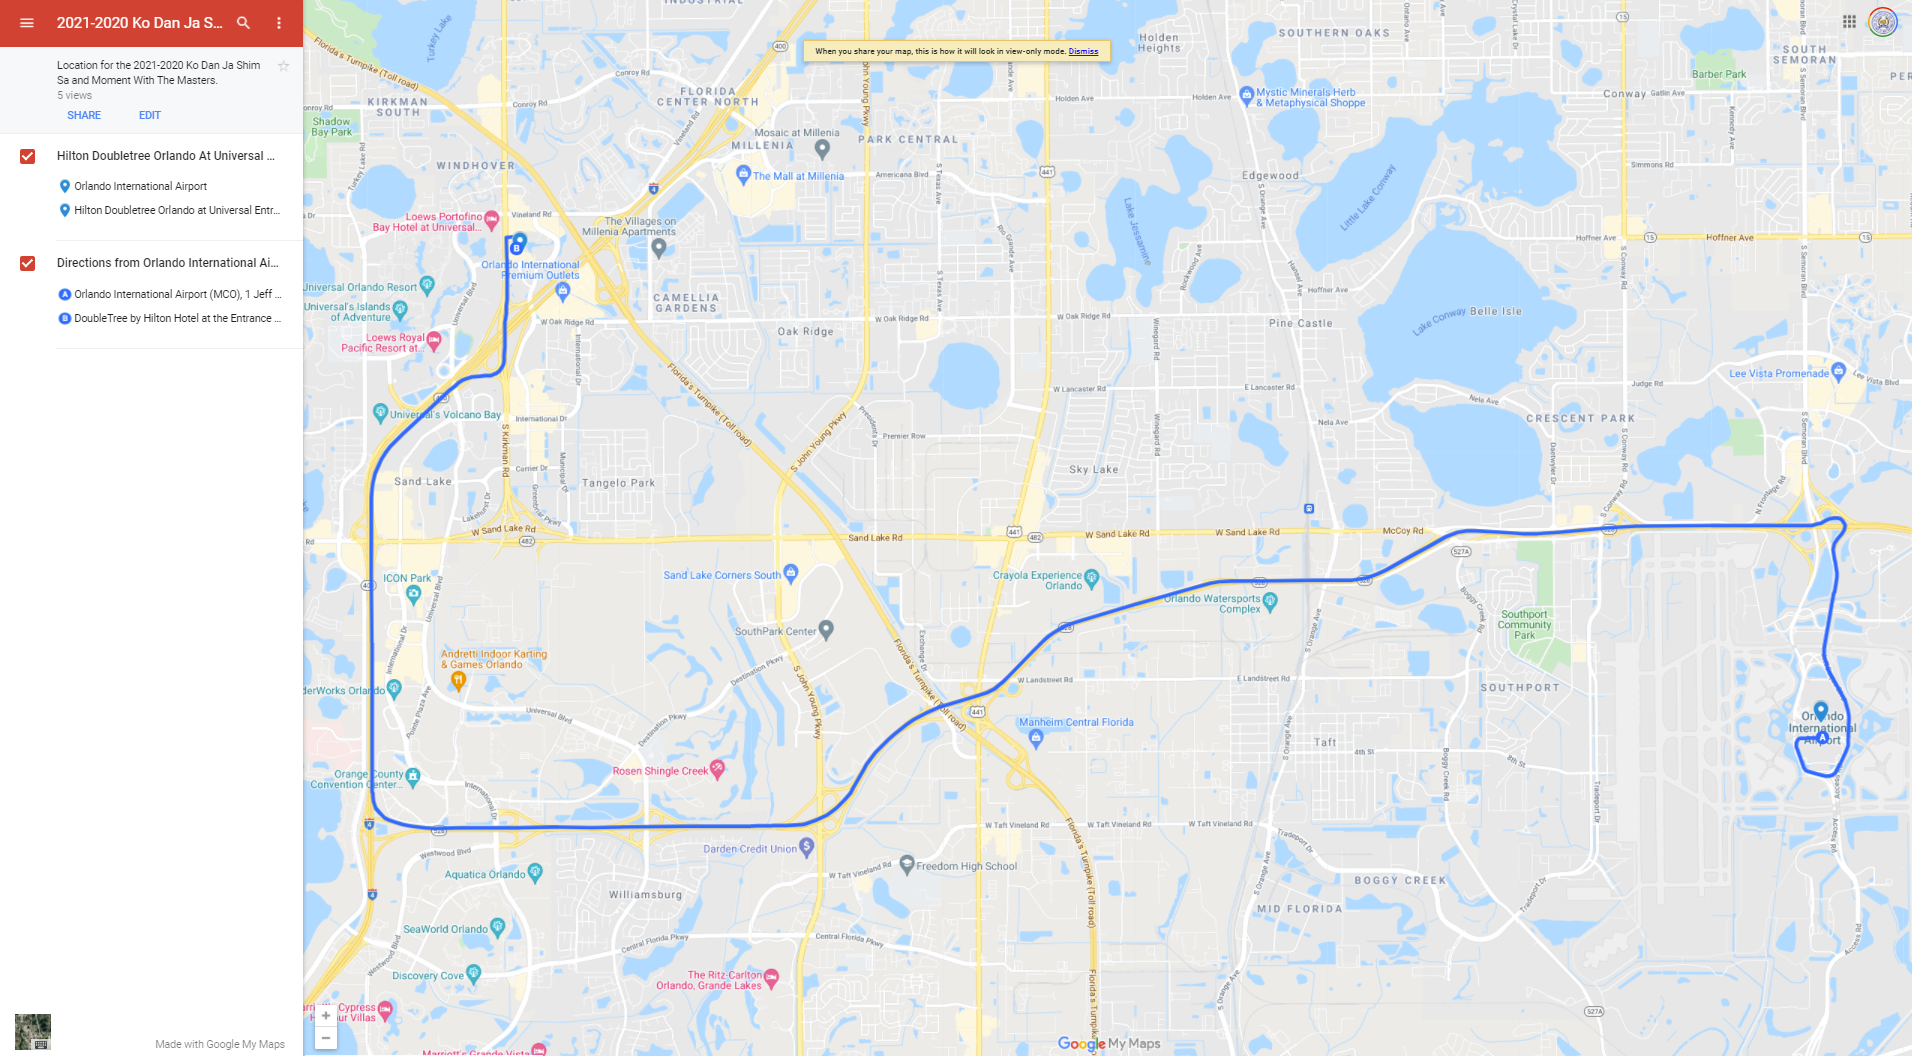 directions-from-airport-to-hotel